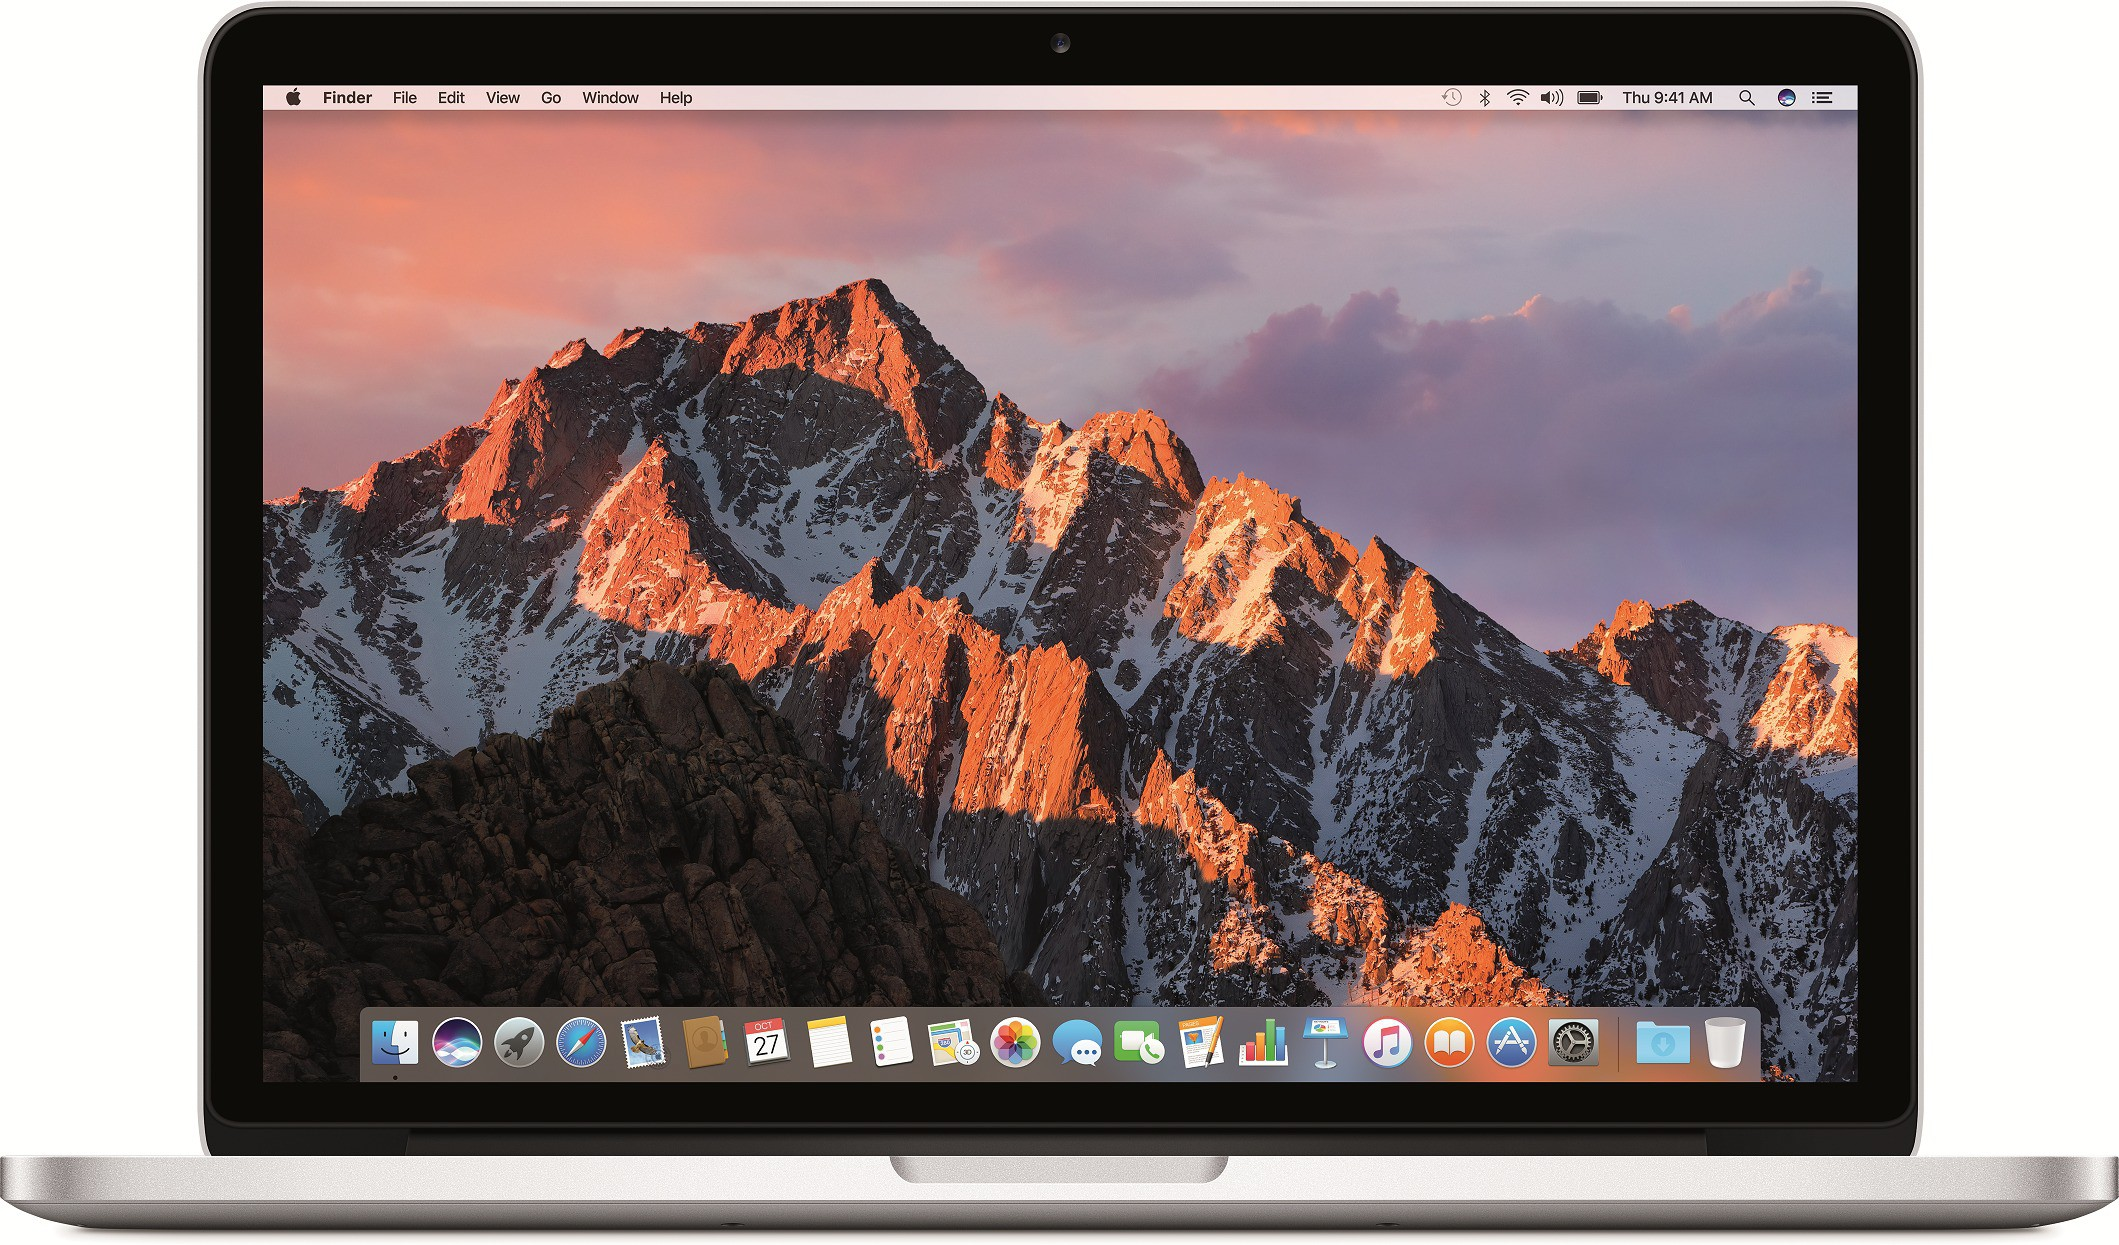 View Apple MacBook Pro Core i5 - (8 GB/128 GB SSD/OS X Yosemite) MF839HN/A(13.3 inch, SIlver, 1.58 kg) Laptop